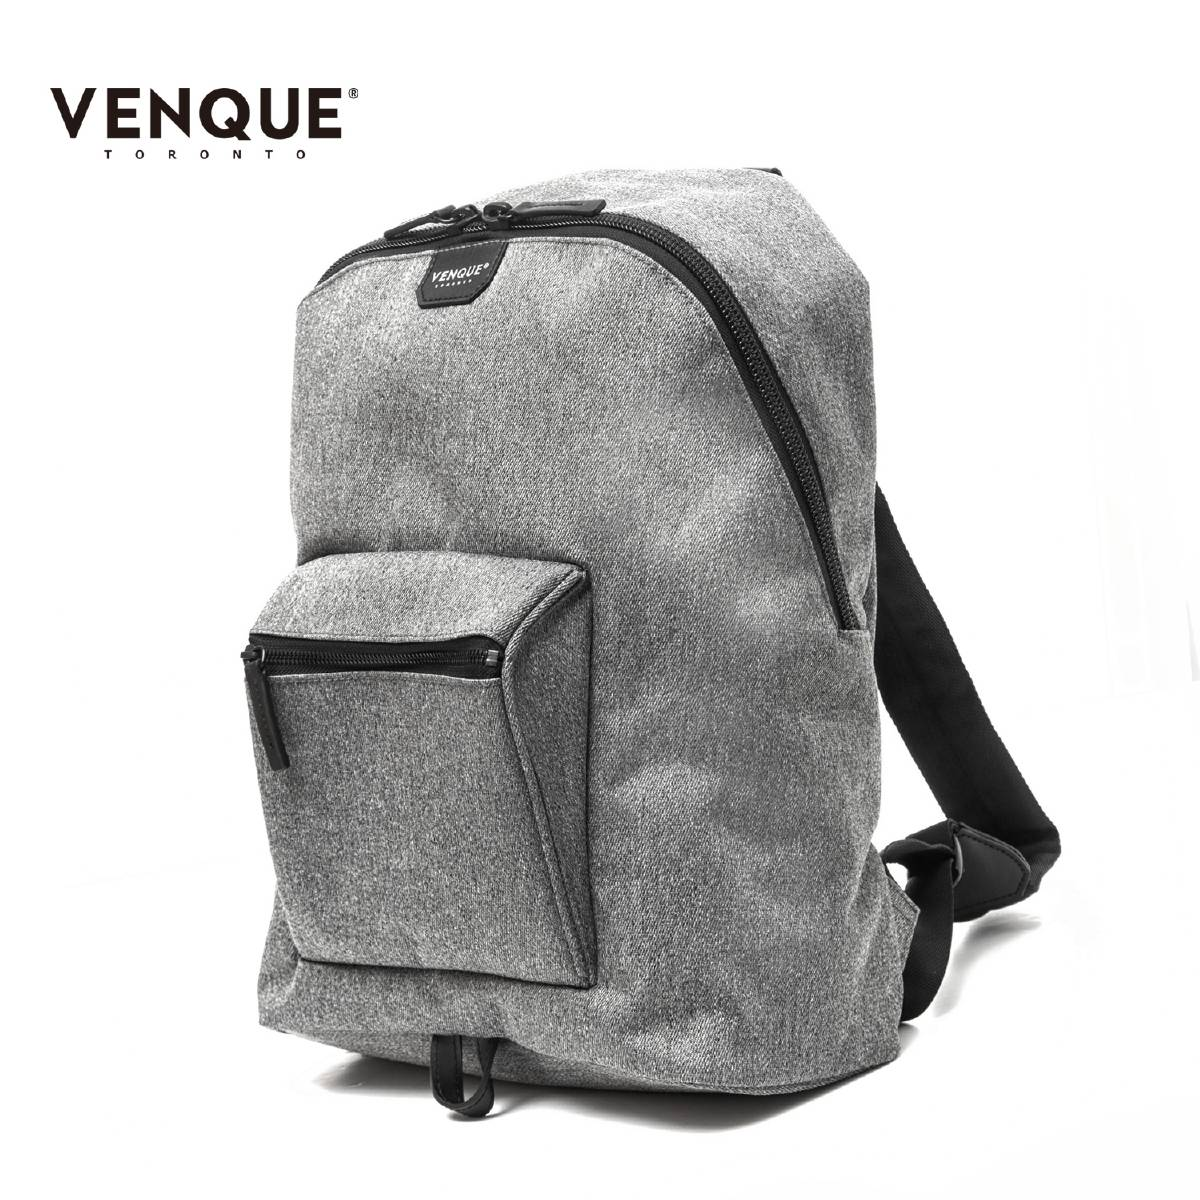 VENQUE ヴェンク DAILY WALKER バックパック メンズ/レディース グレー OS